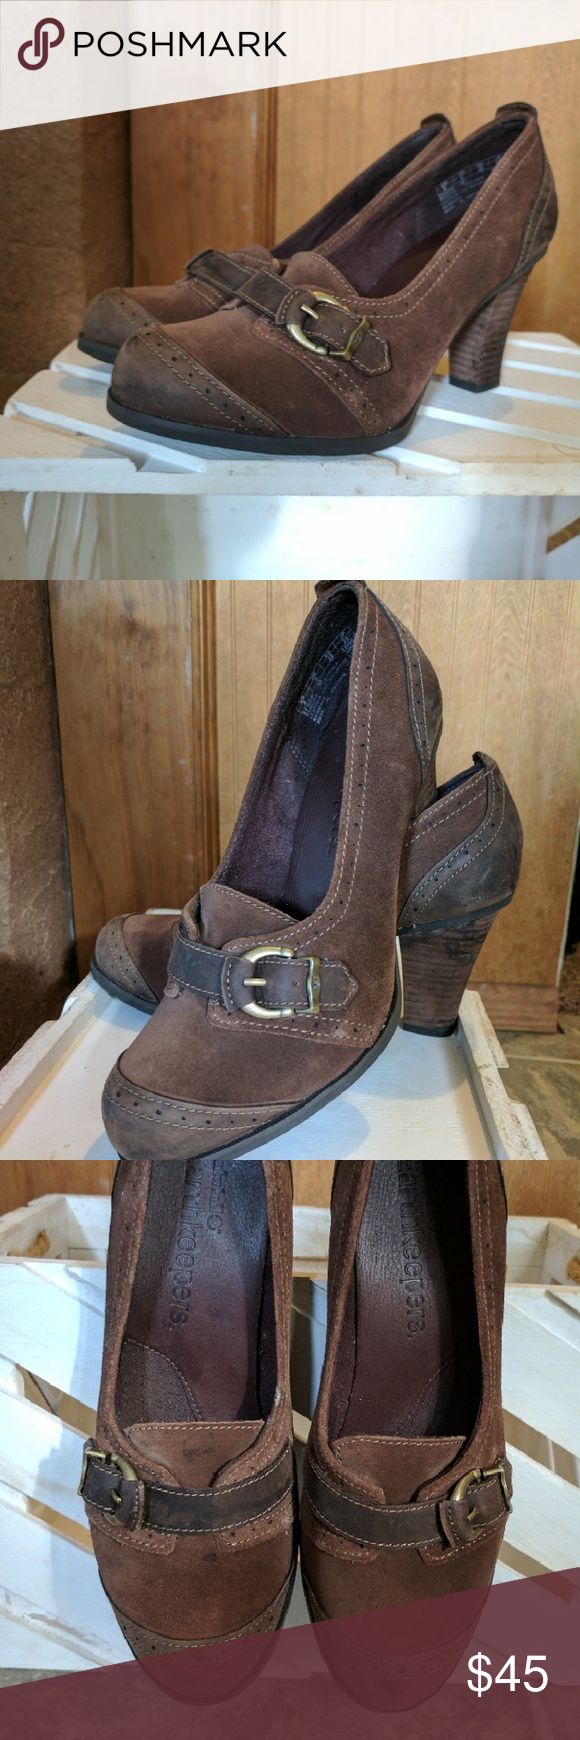 Timberland Earthkeepers ~ heels Brown Timberland Earthkeepers with buckle.  Super cute and comfortable!  Never worn outside home. Timberland Shoes Heels